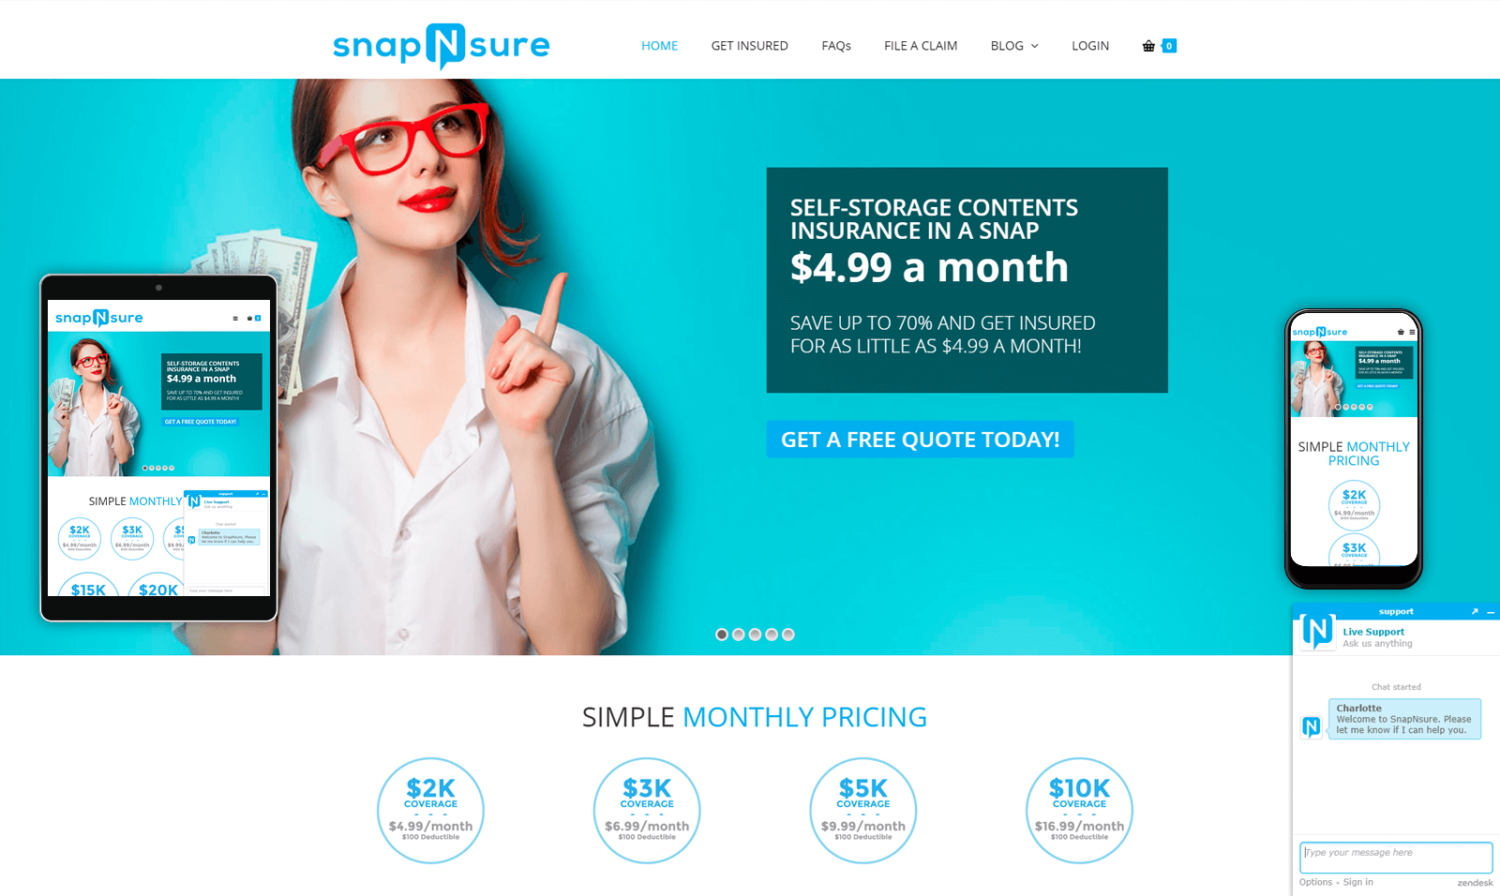 SnapNsure Website Design - By Young Company